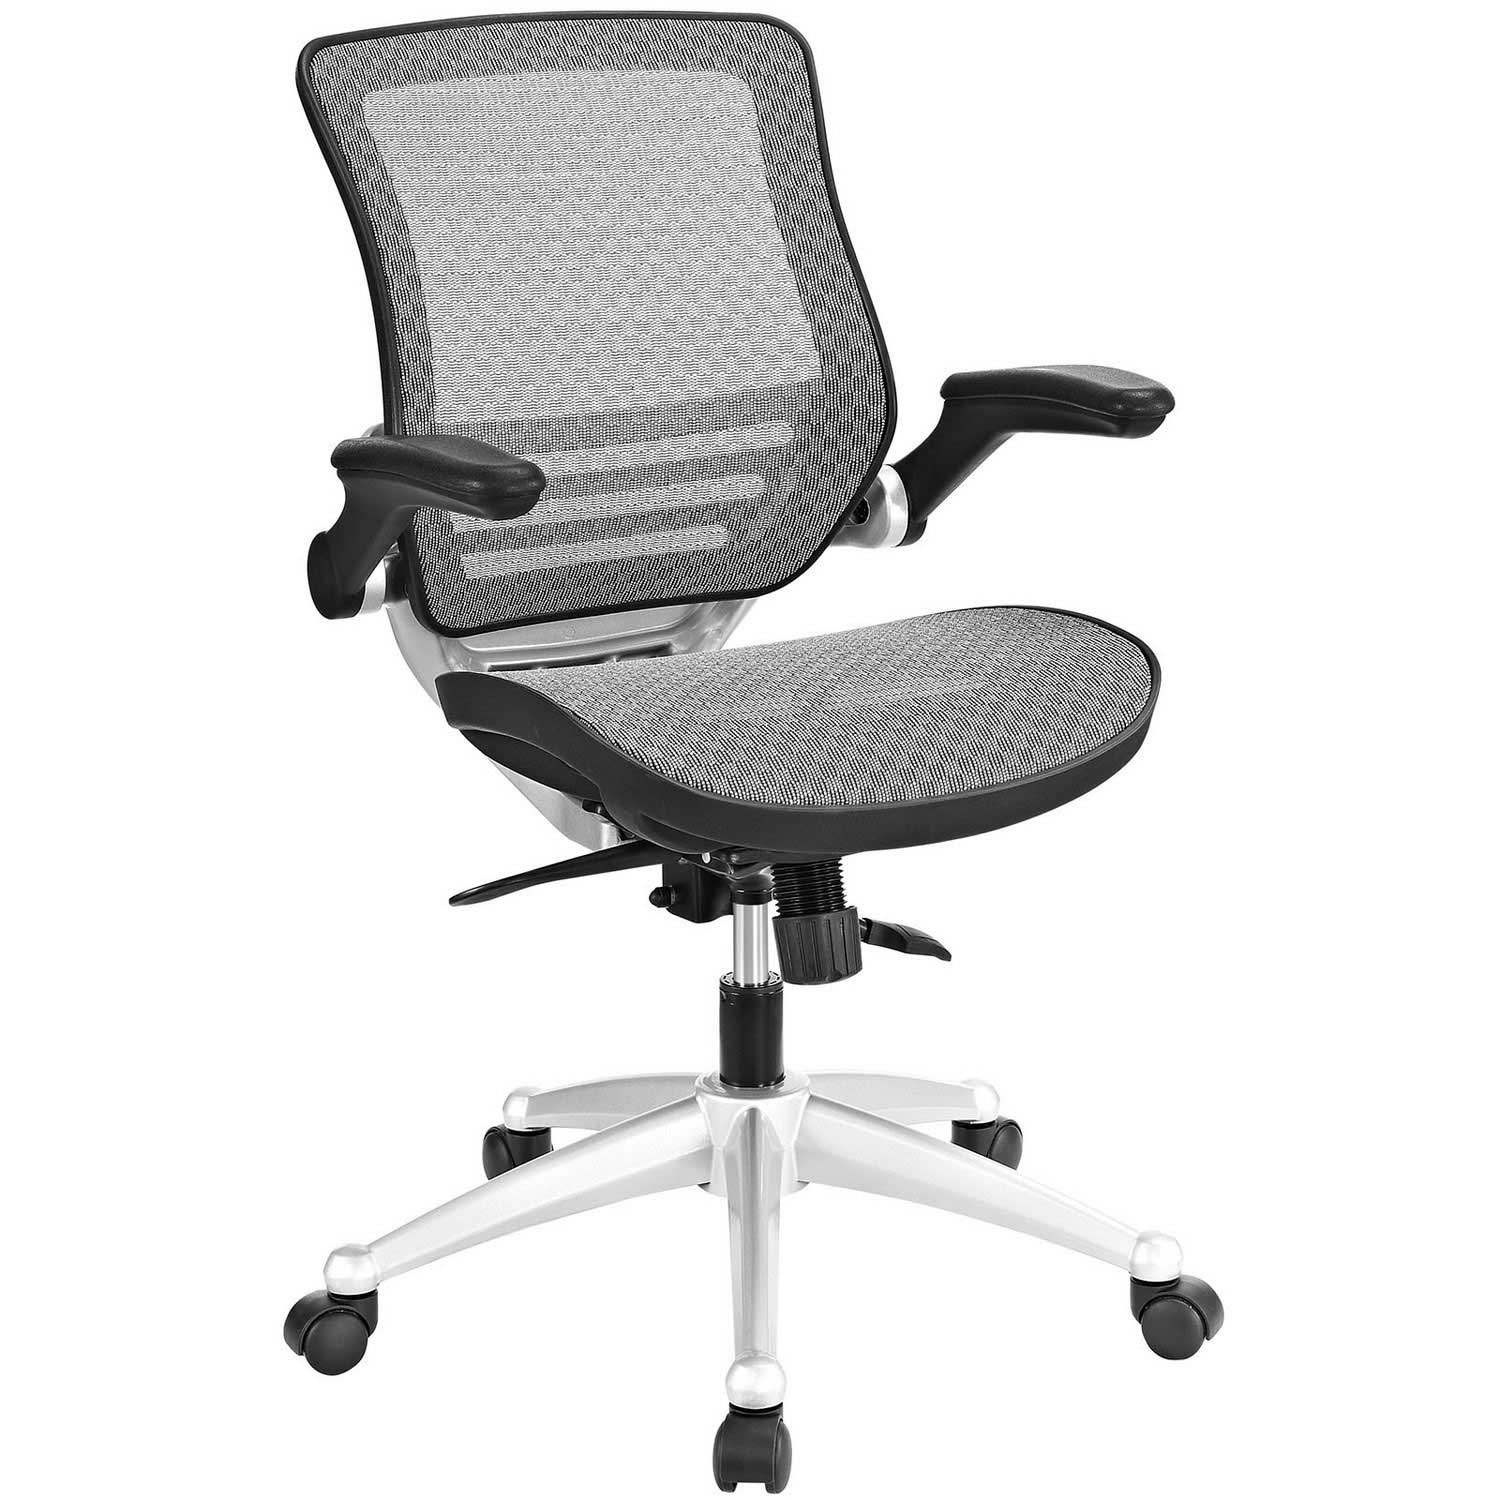 modway office chair disc golf edge all mesh gray mw eei 2064 gry